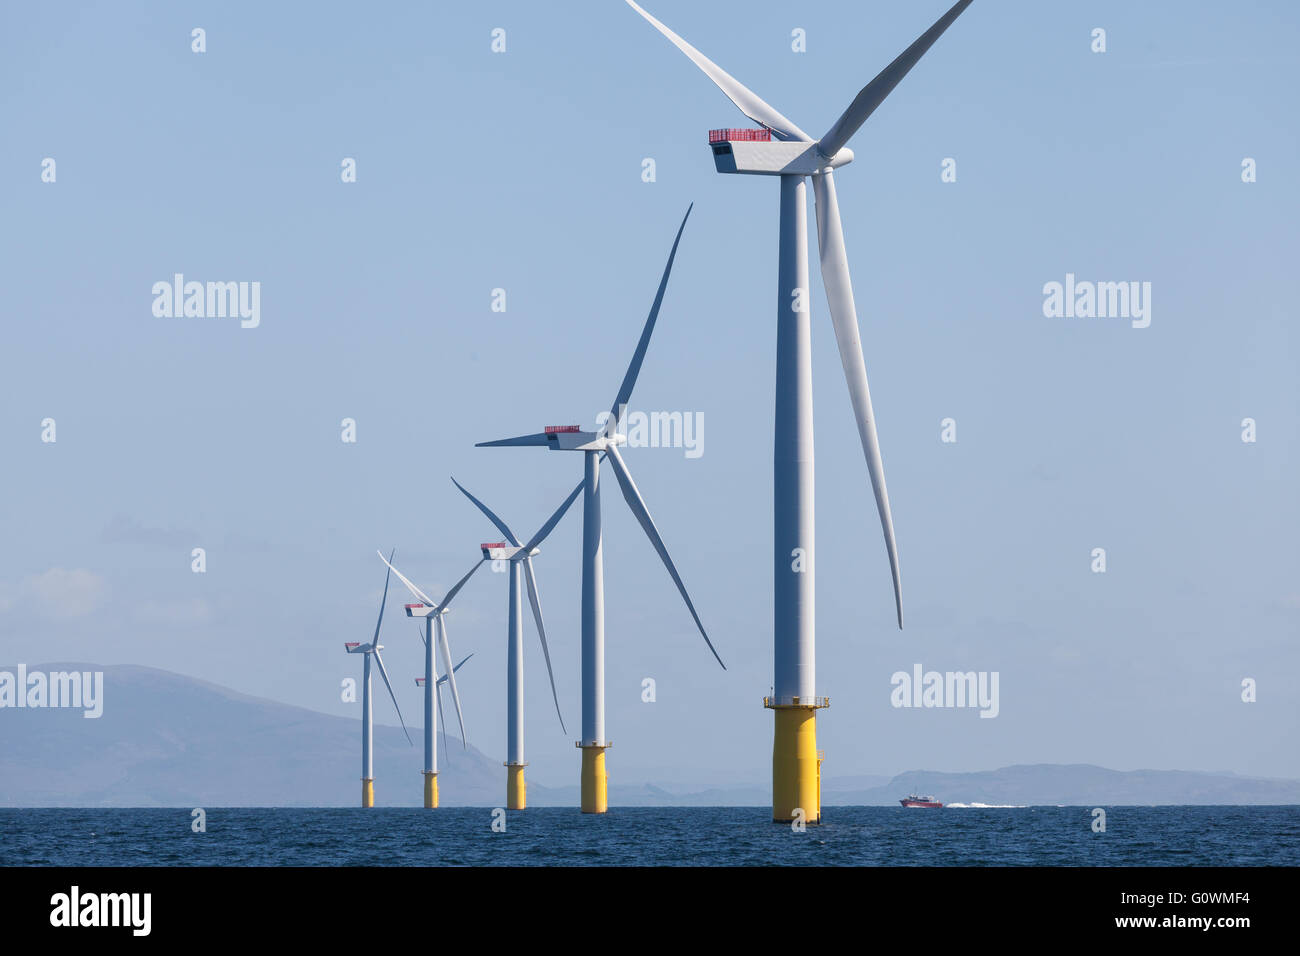 Walney Offshore Wind Farm off the Cumbrian Coast in the UK - Stock Image